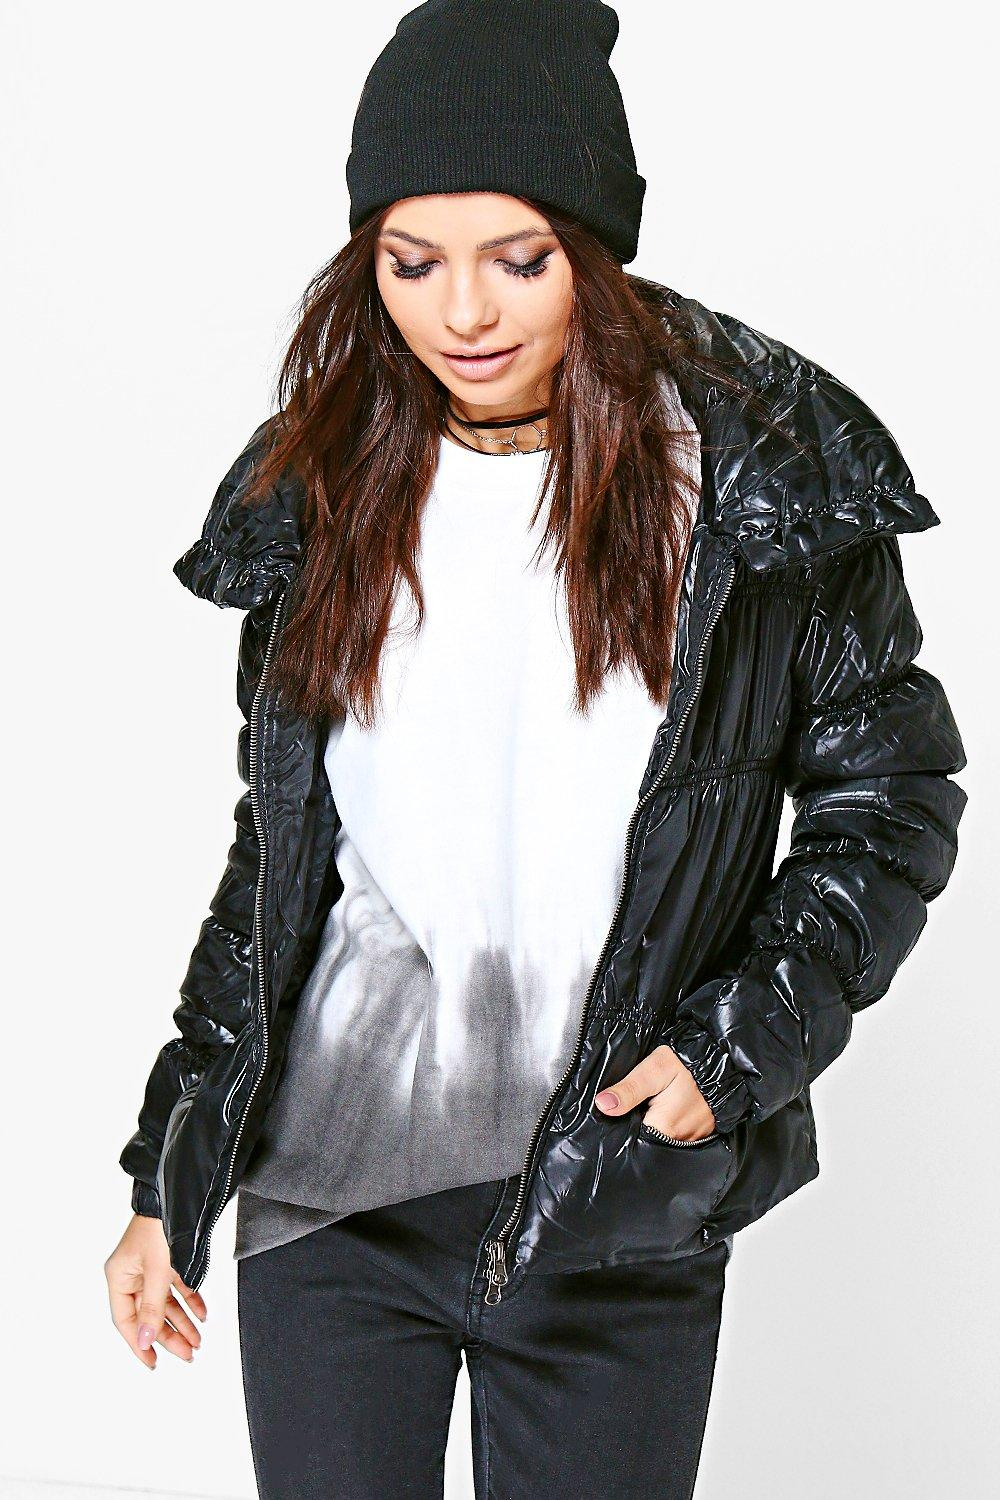 Katie Padded Jacket